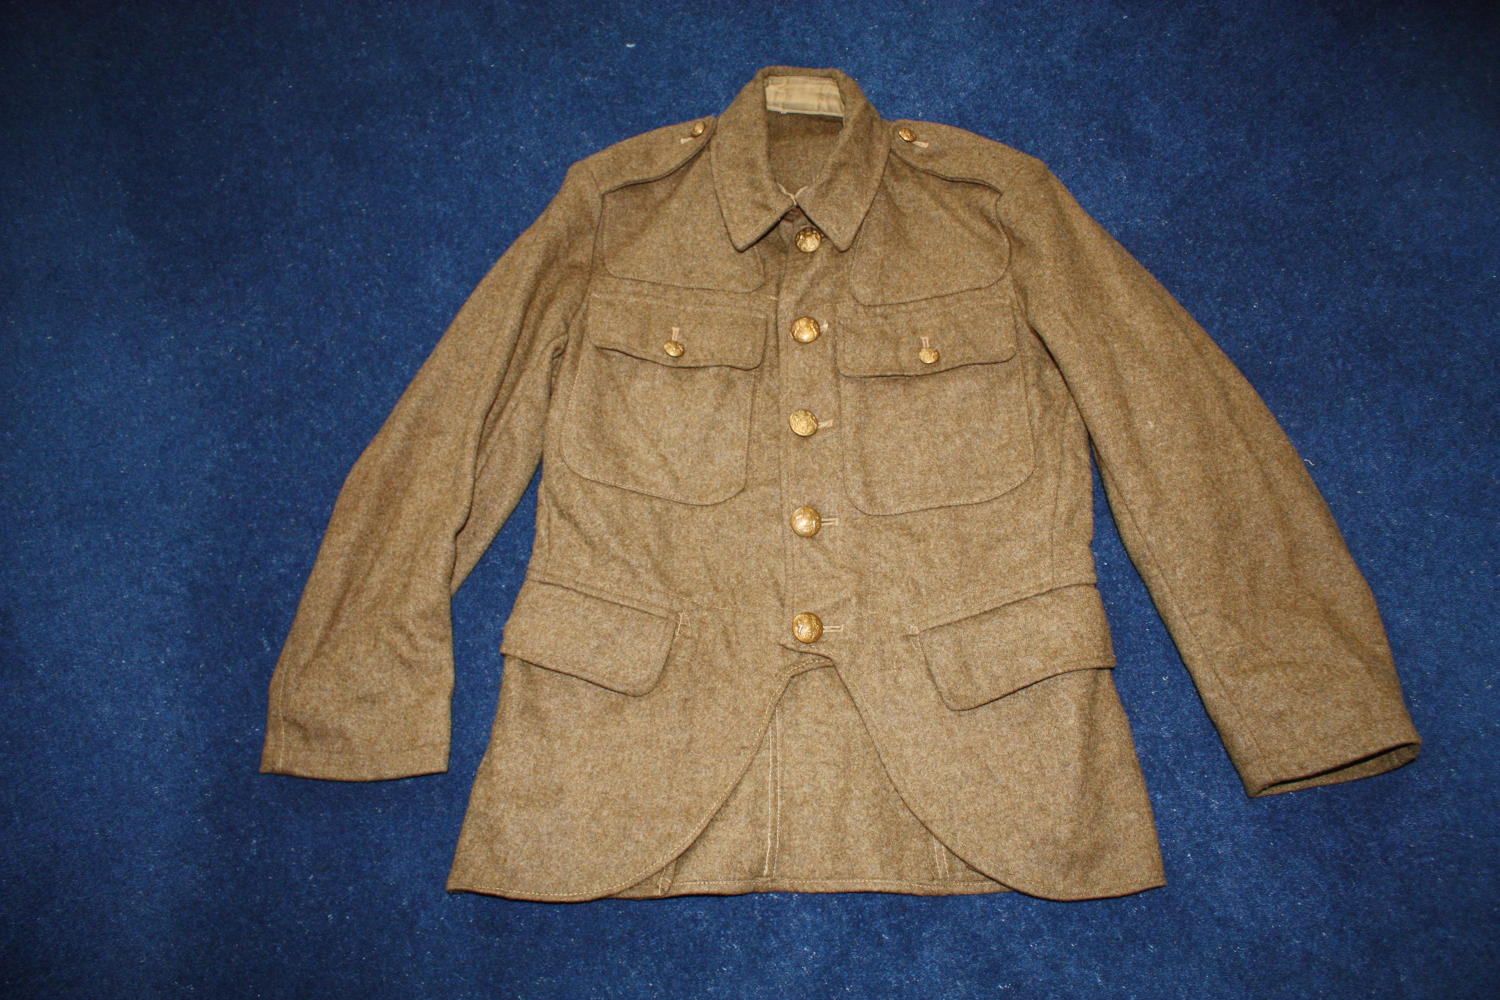 SCOTTISH 1922 HIGHLAND PATTERN SERVICE DRESS KHAKI TUNIC